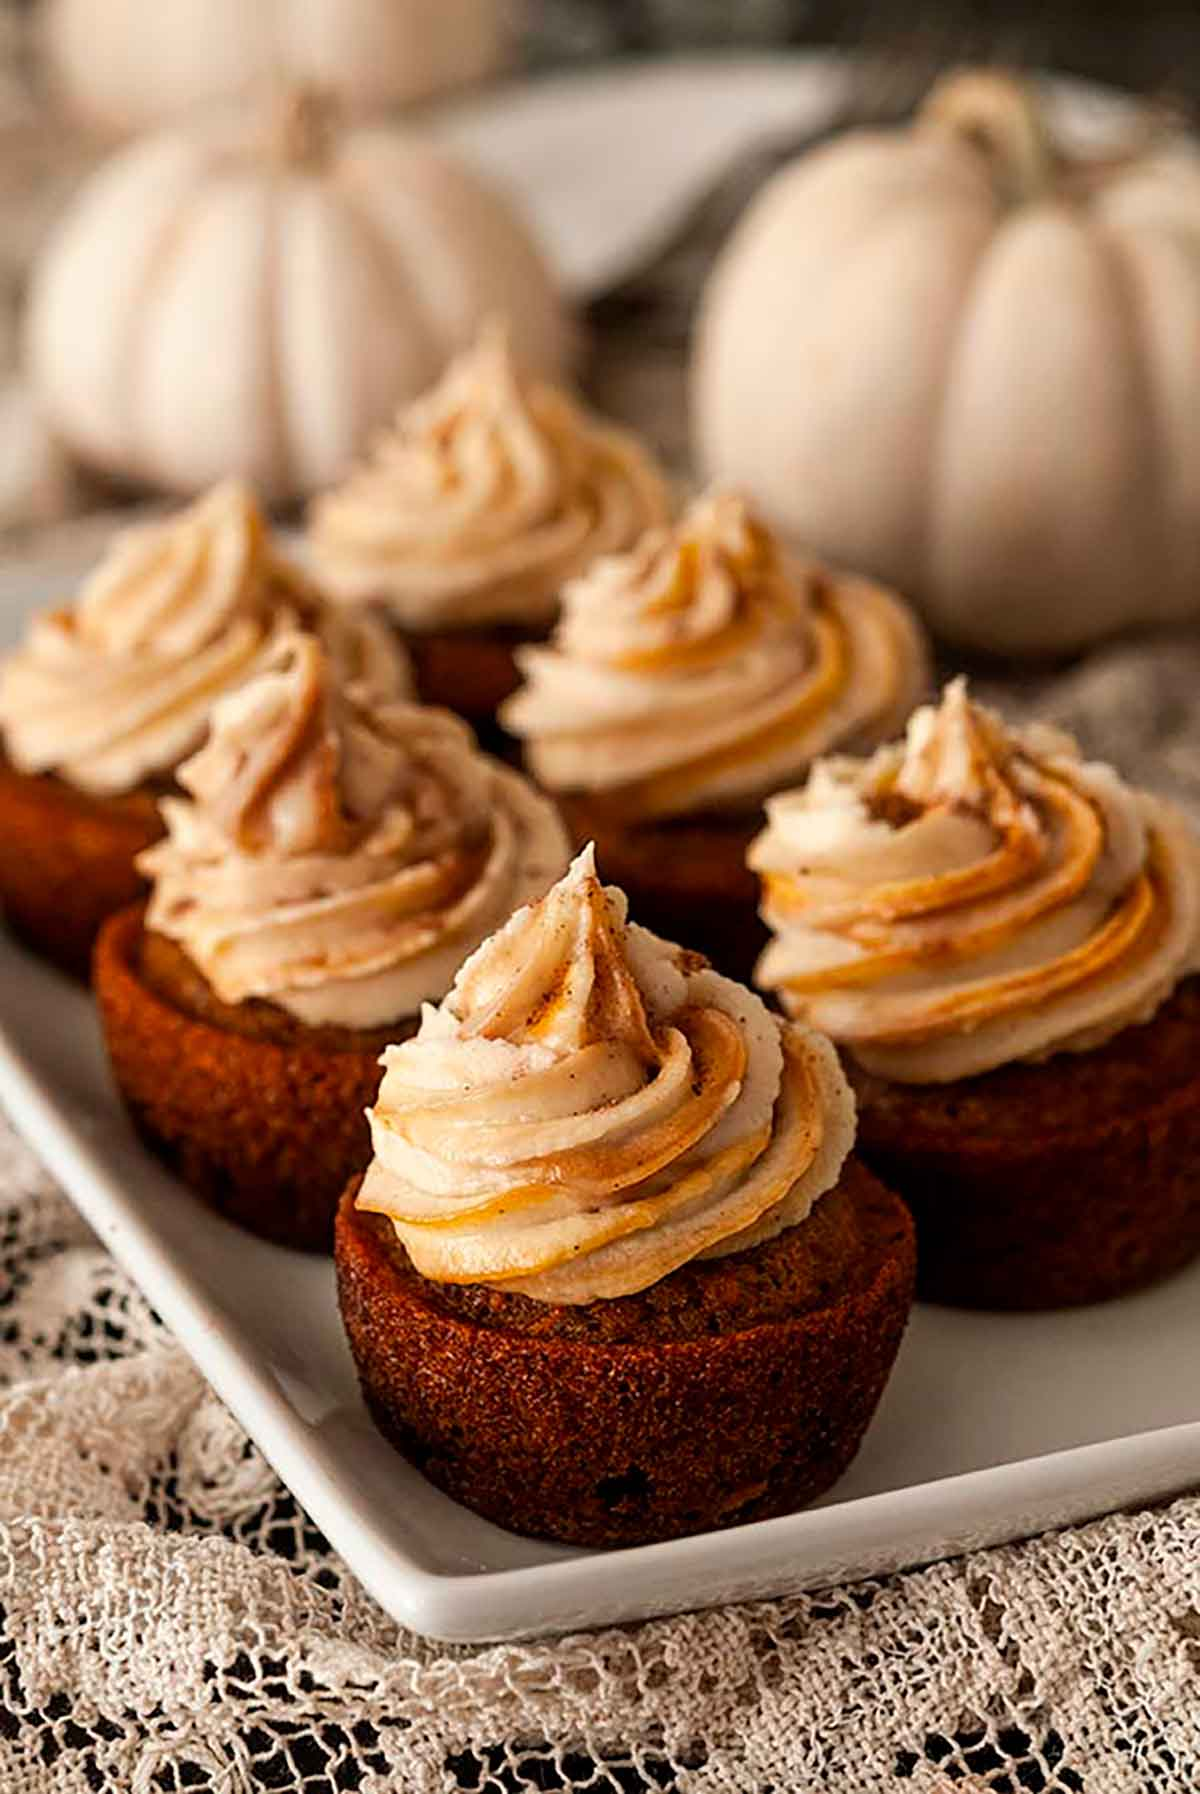 6 carrot cupcakes on a plate in front of white pumpkins.